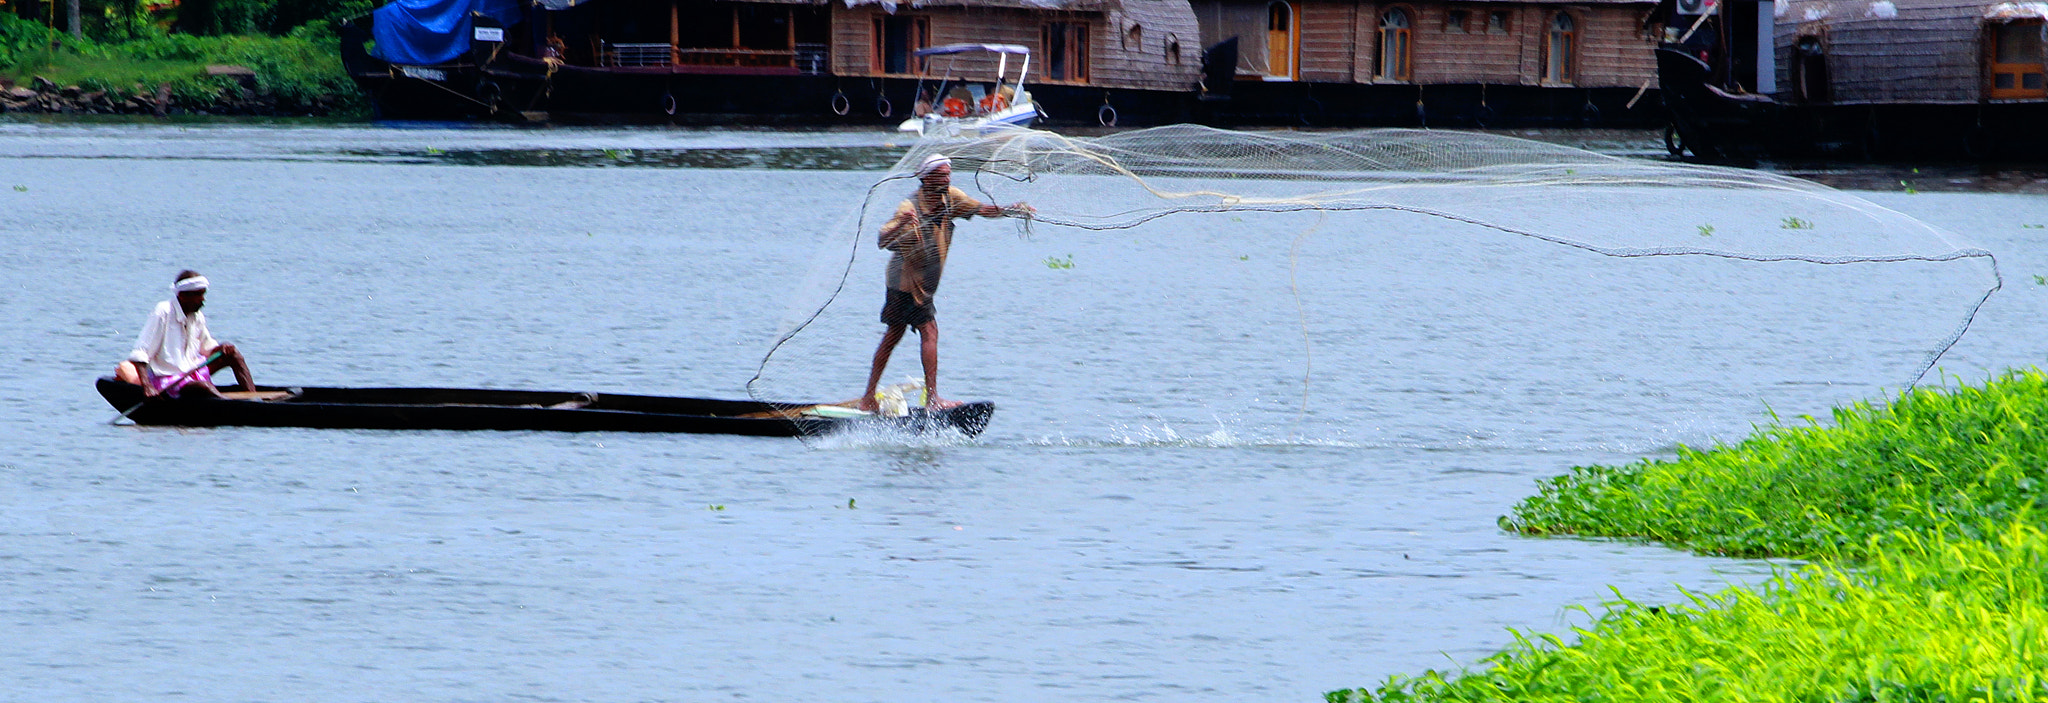 Photograph fisherman by Sumith T J photography on 500px